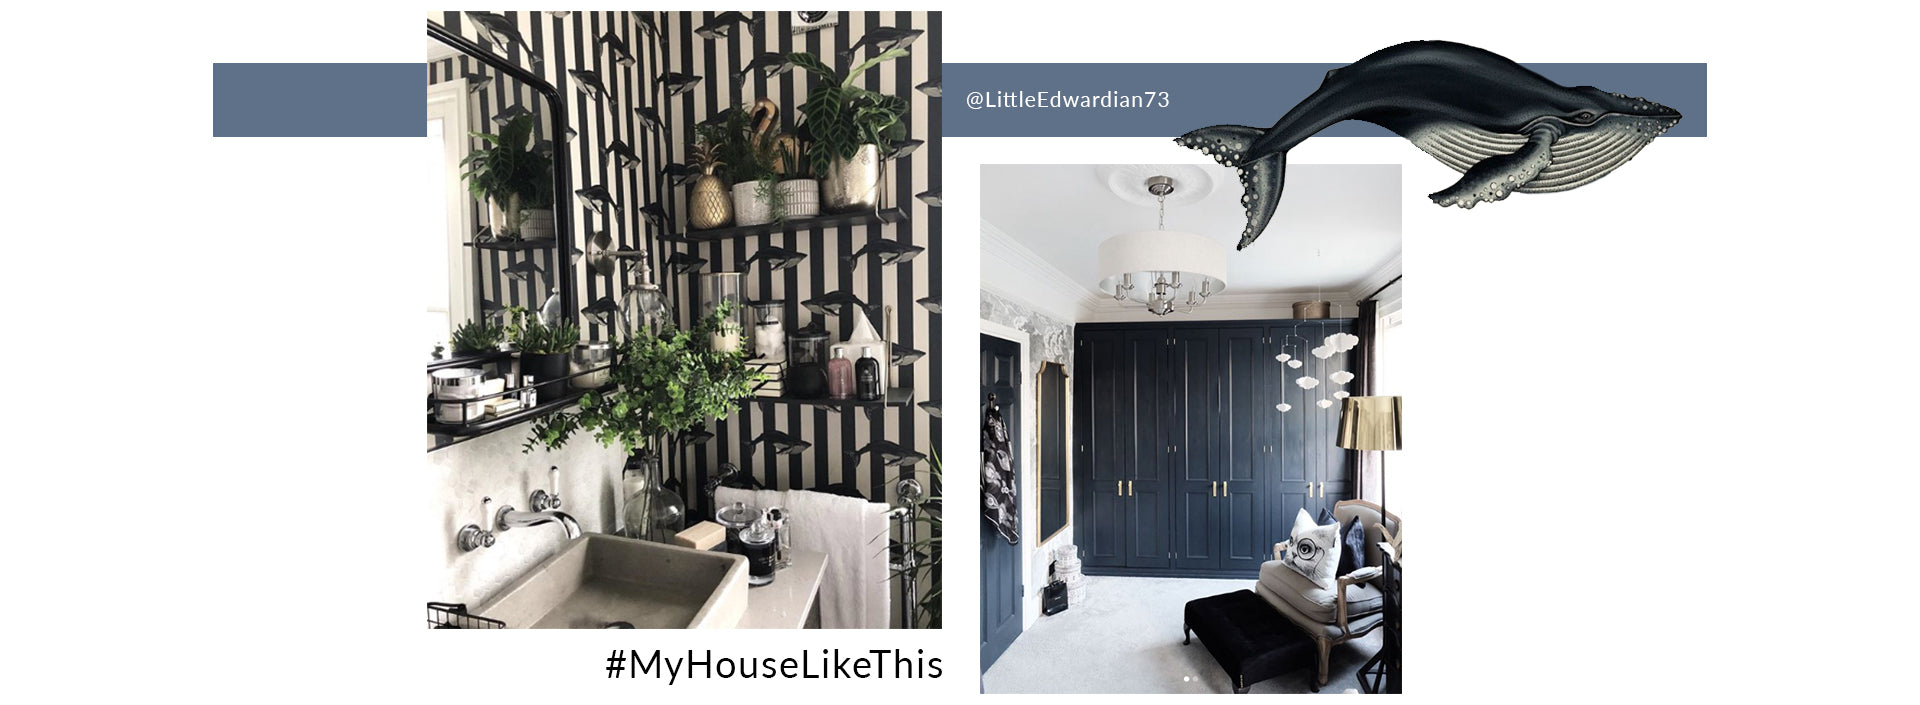 MYHOUSELIKETHIS features LittleEdwardian73 - a home with fornasetti house of hackney inspired wallpaper, dark glamour and monochrome decor